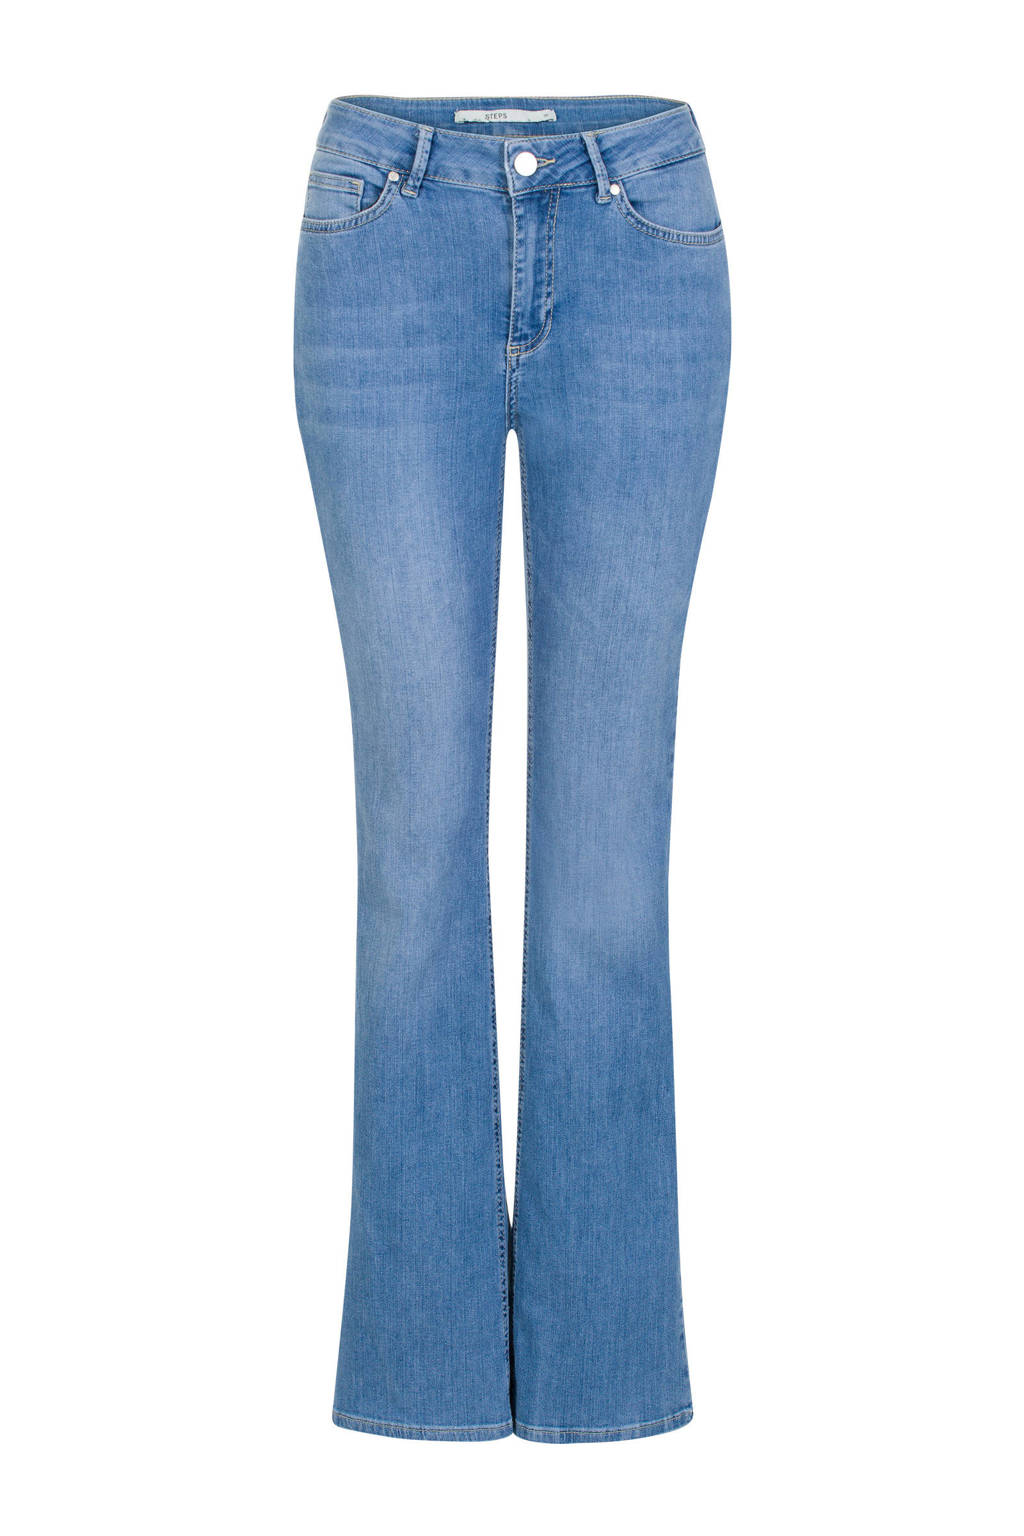 Steps bootcut jeans, Stonewashed